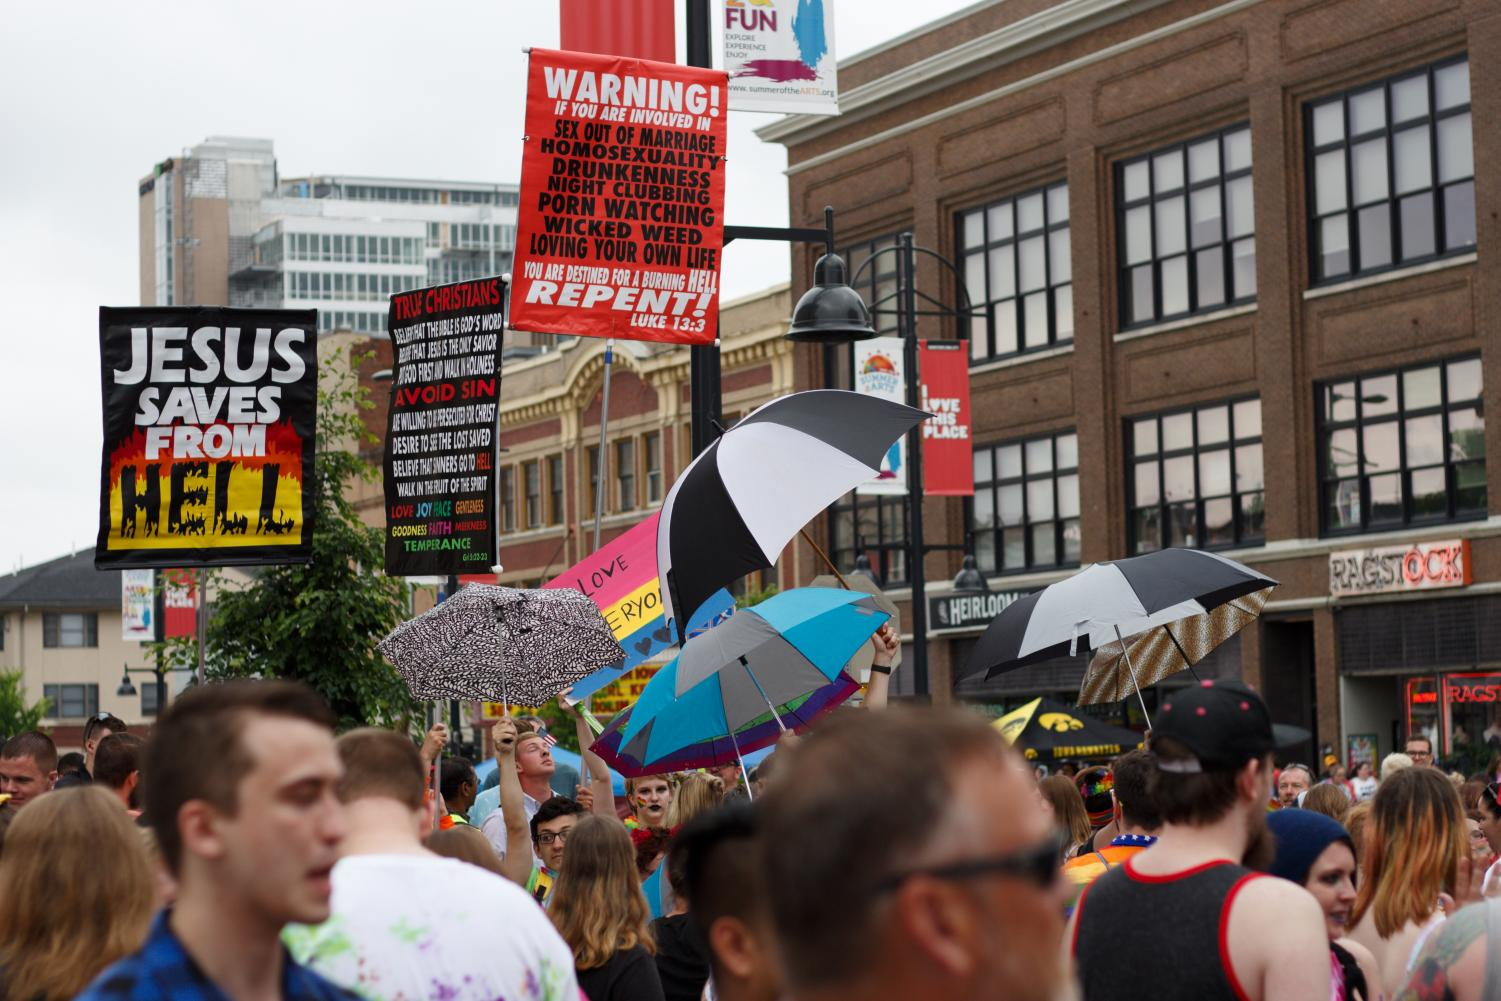 Protestors+of+the+event+held+signs+that+condemned+the+LGBTQIA%2B+community.+This+negative+presence+was+peacefully+met+by+attendants+of+the+festival+who+held+up+large+umbrellas+to+shield+the+signs+from+view.